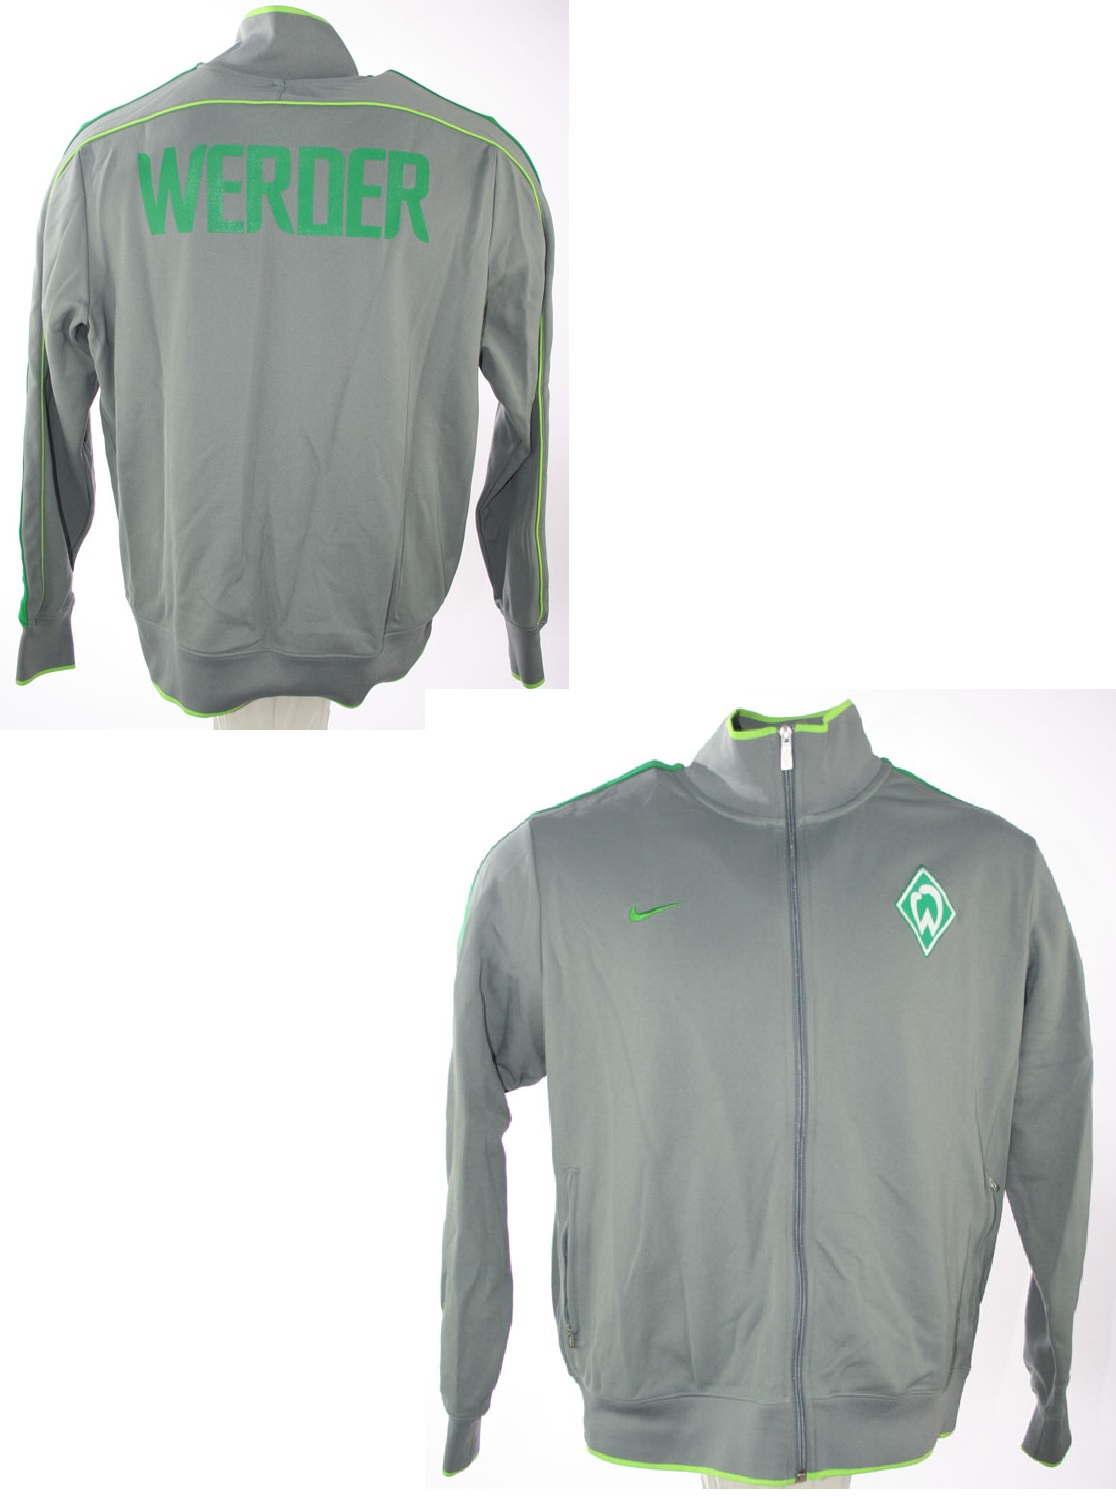 nike sv werder bremen jacke teamwear heim gr n herren s m. Black Bedroom Furniture Sets. Home Design Ideas